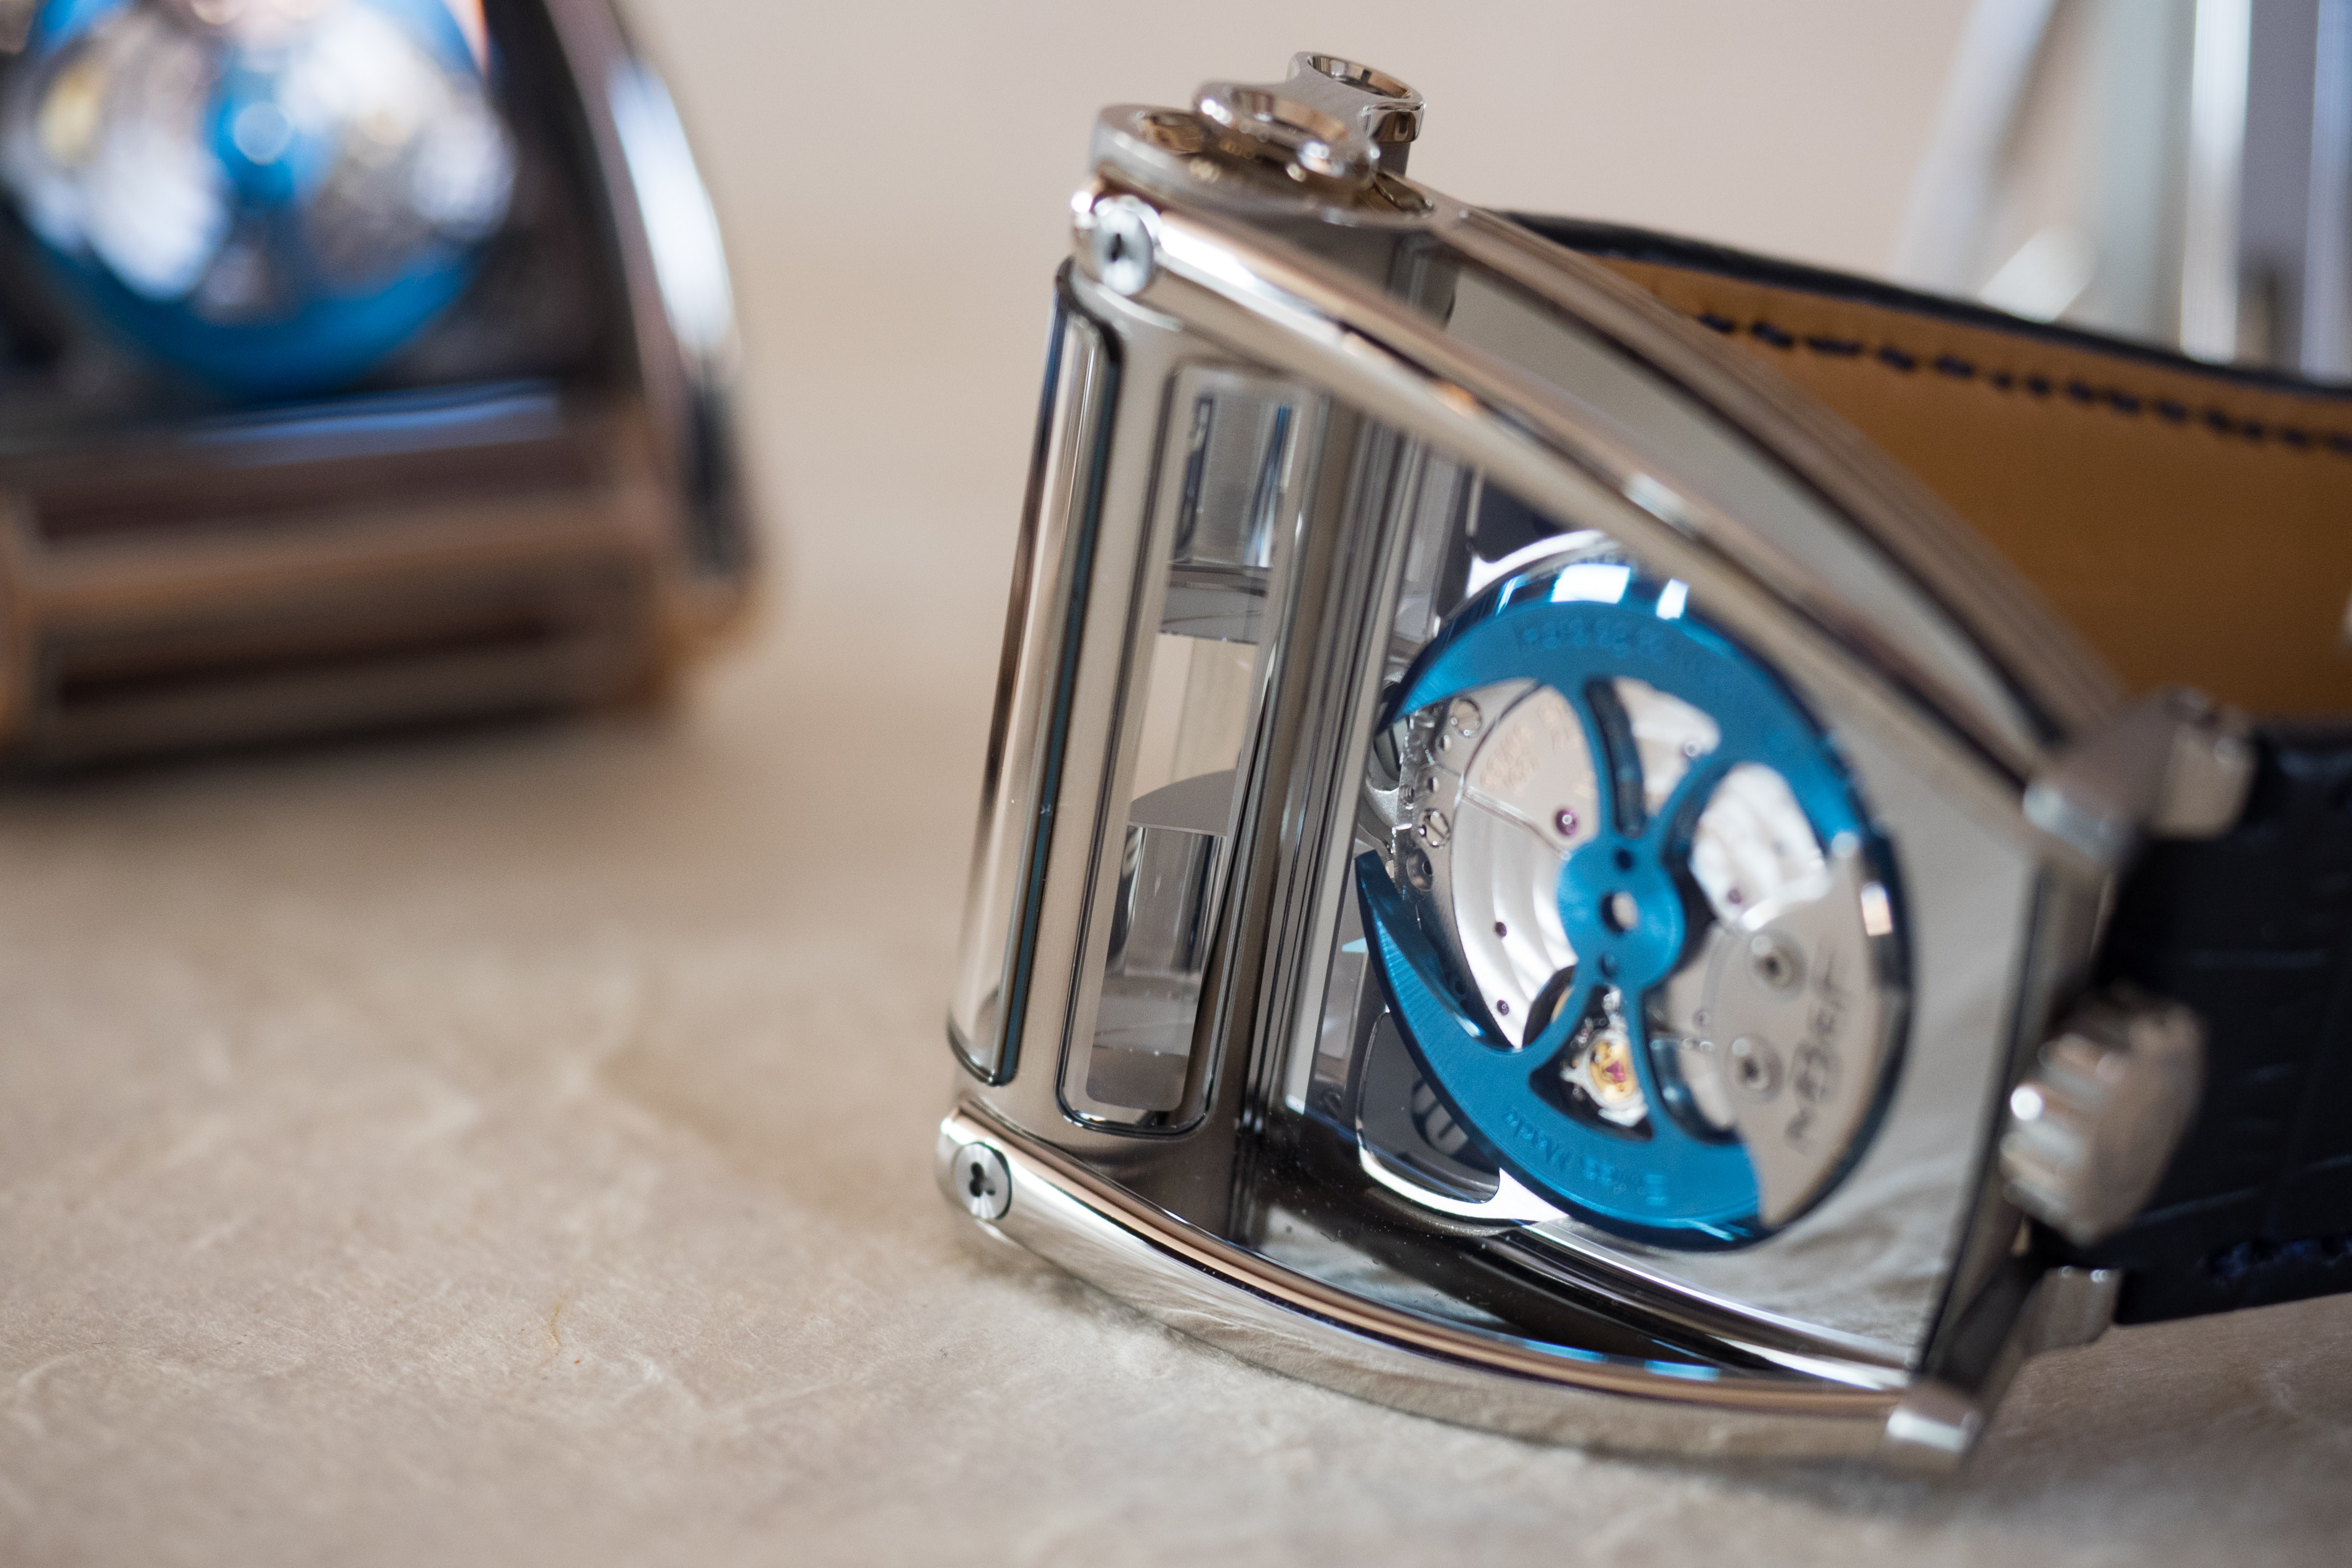 HM8 winding rotor Hands-On: The MB&F Horological Machine No. 8 'Can-Am' Hands-On: The MB&F Horological Machine No. 8 'Can-Am' PA131690